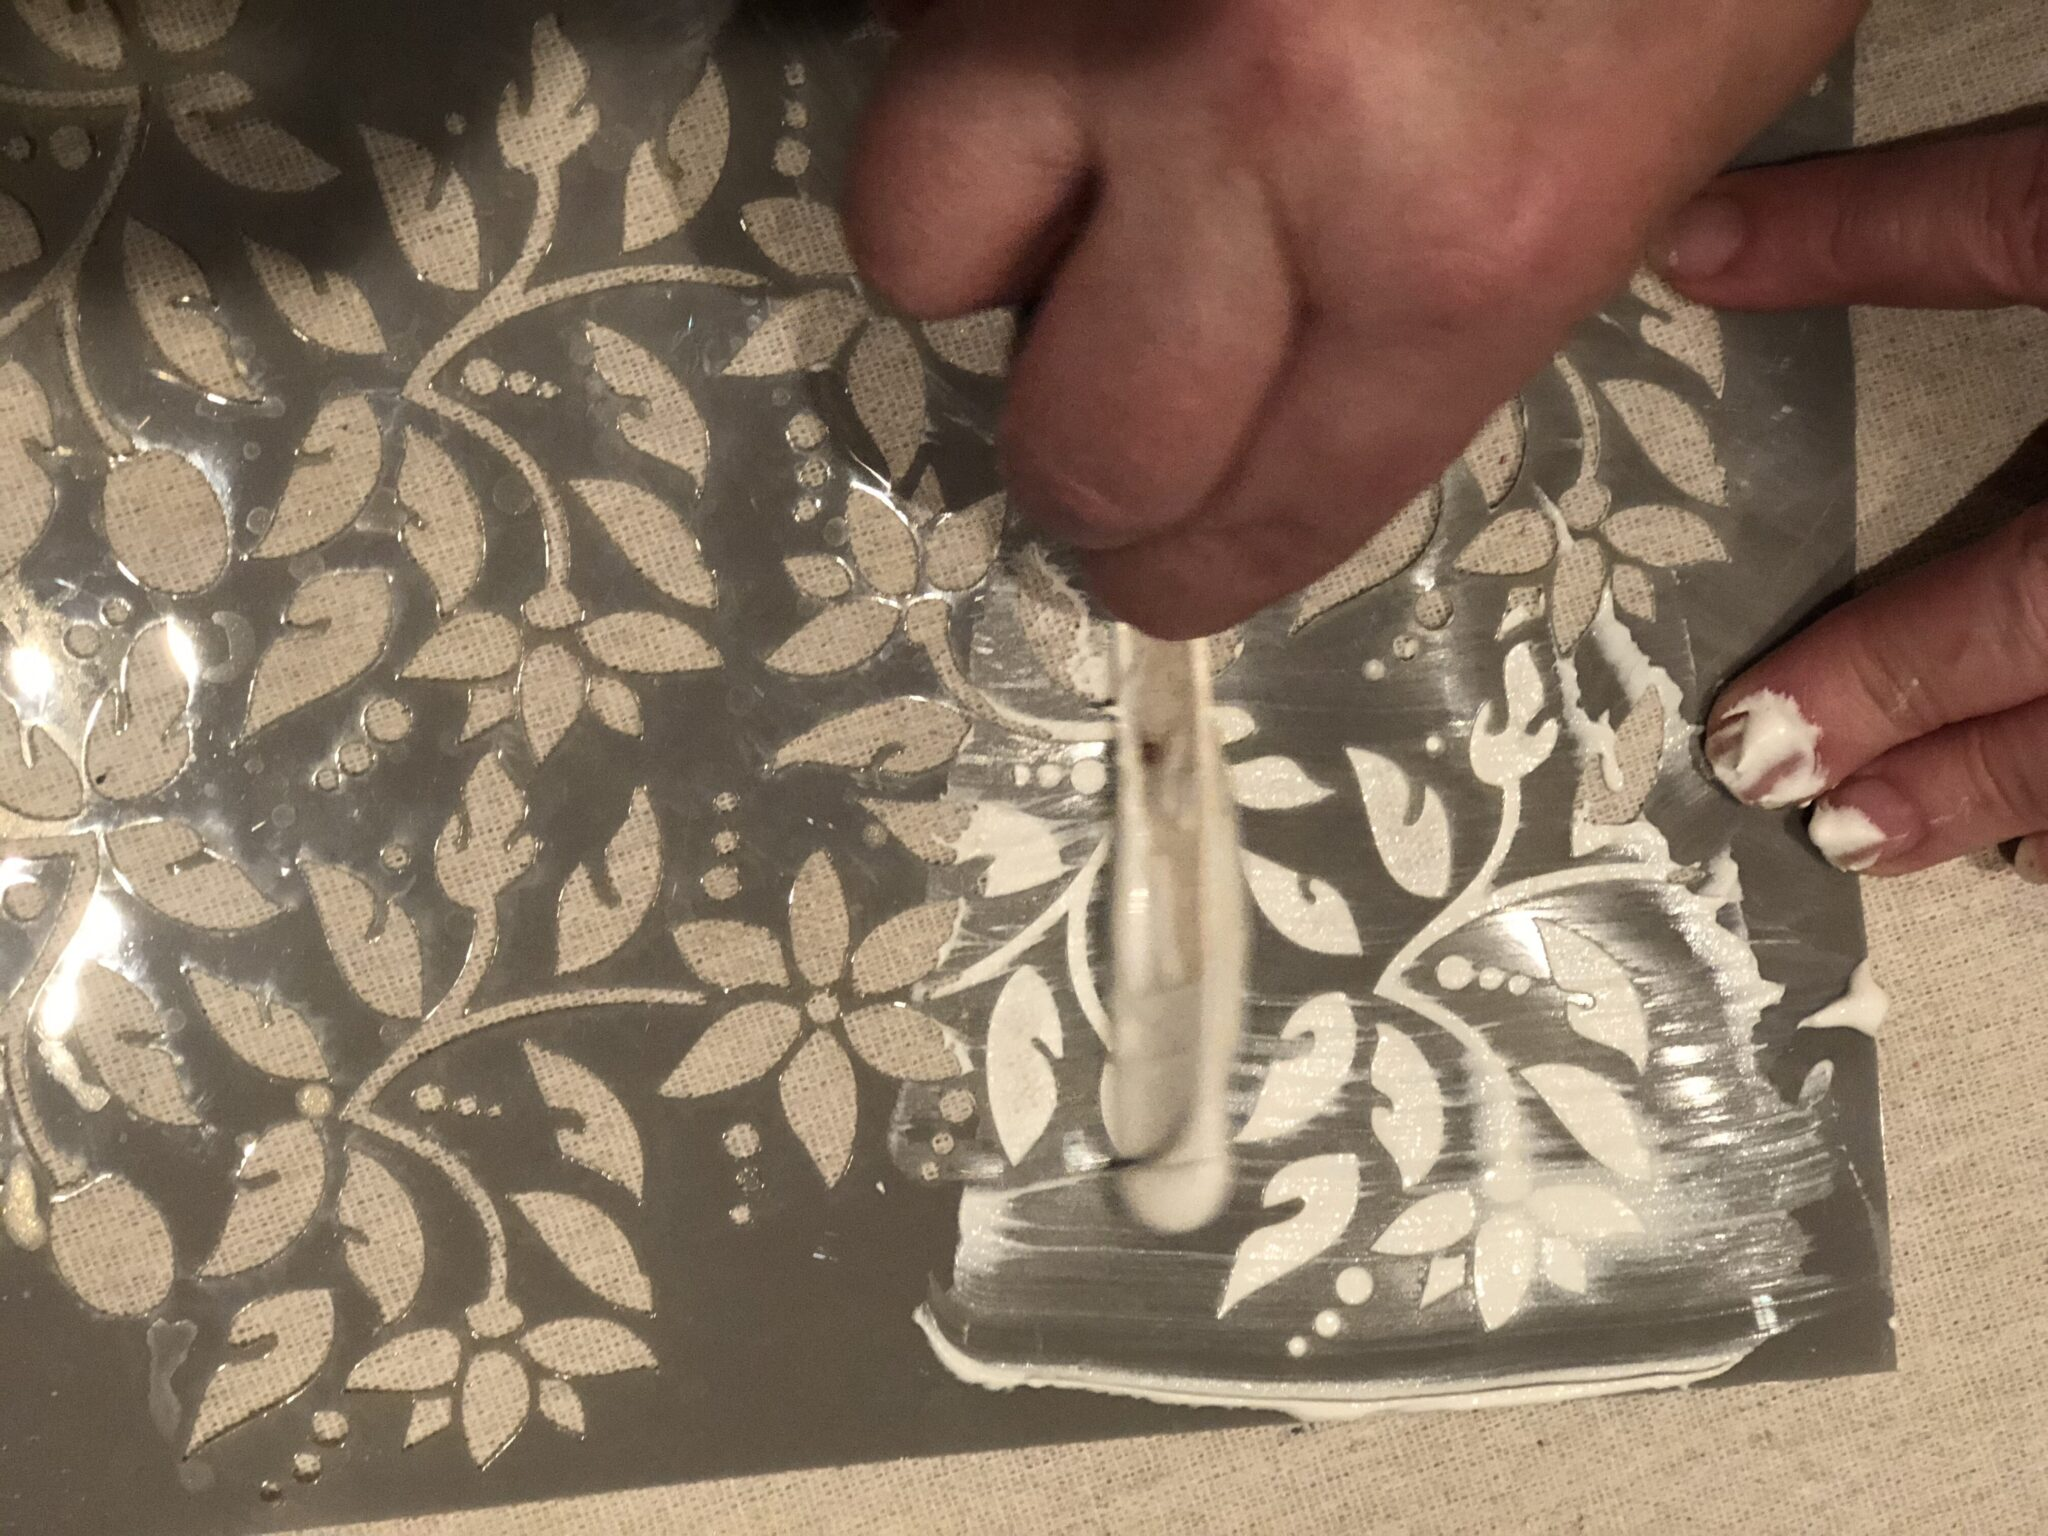 Let's make easy drop cloth flower using  kitchen whisk. Fun recycled project. Textured stencils on fabric